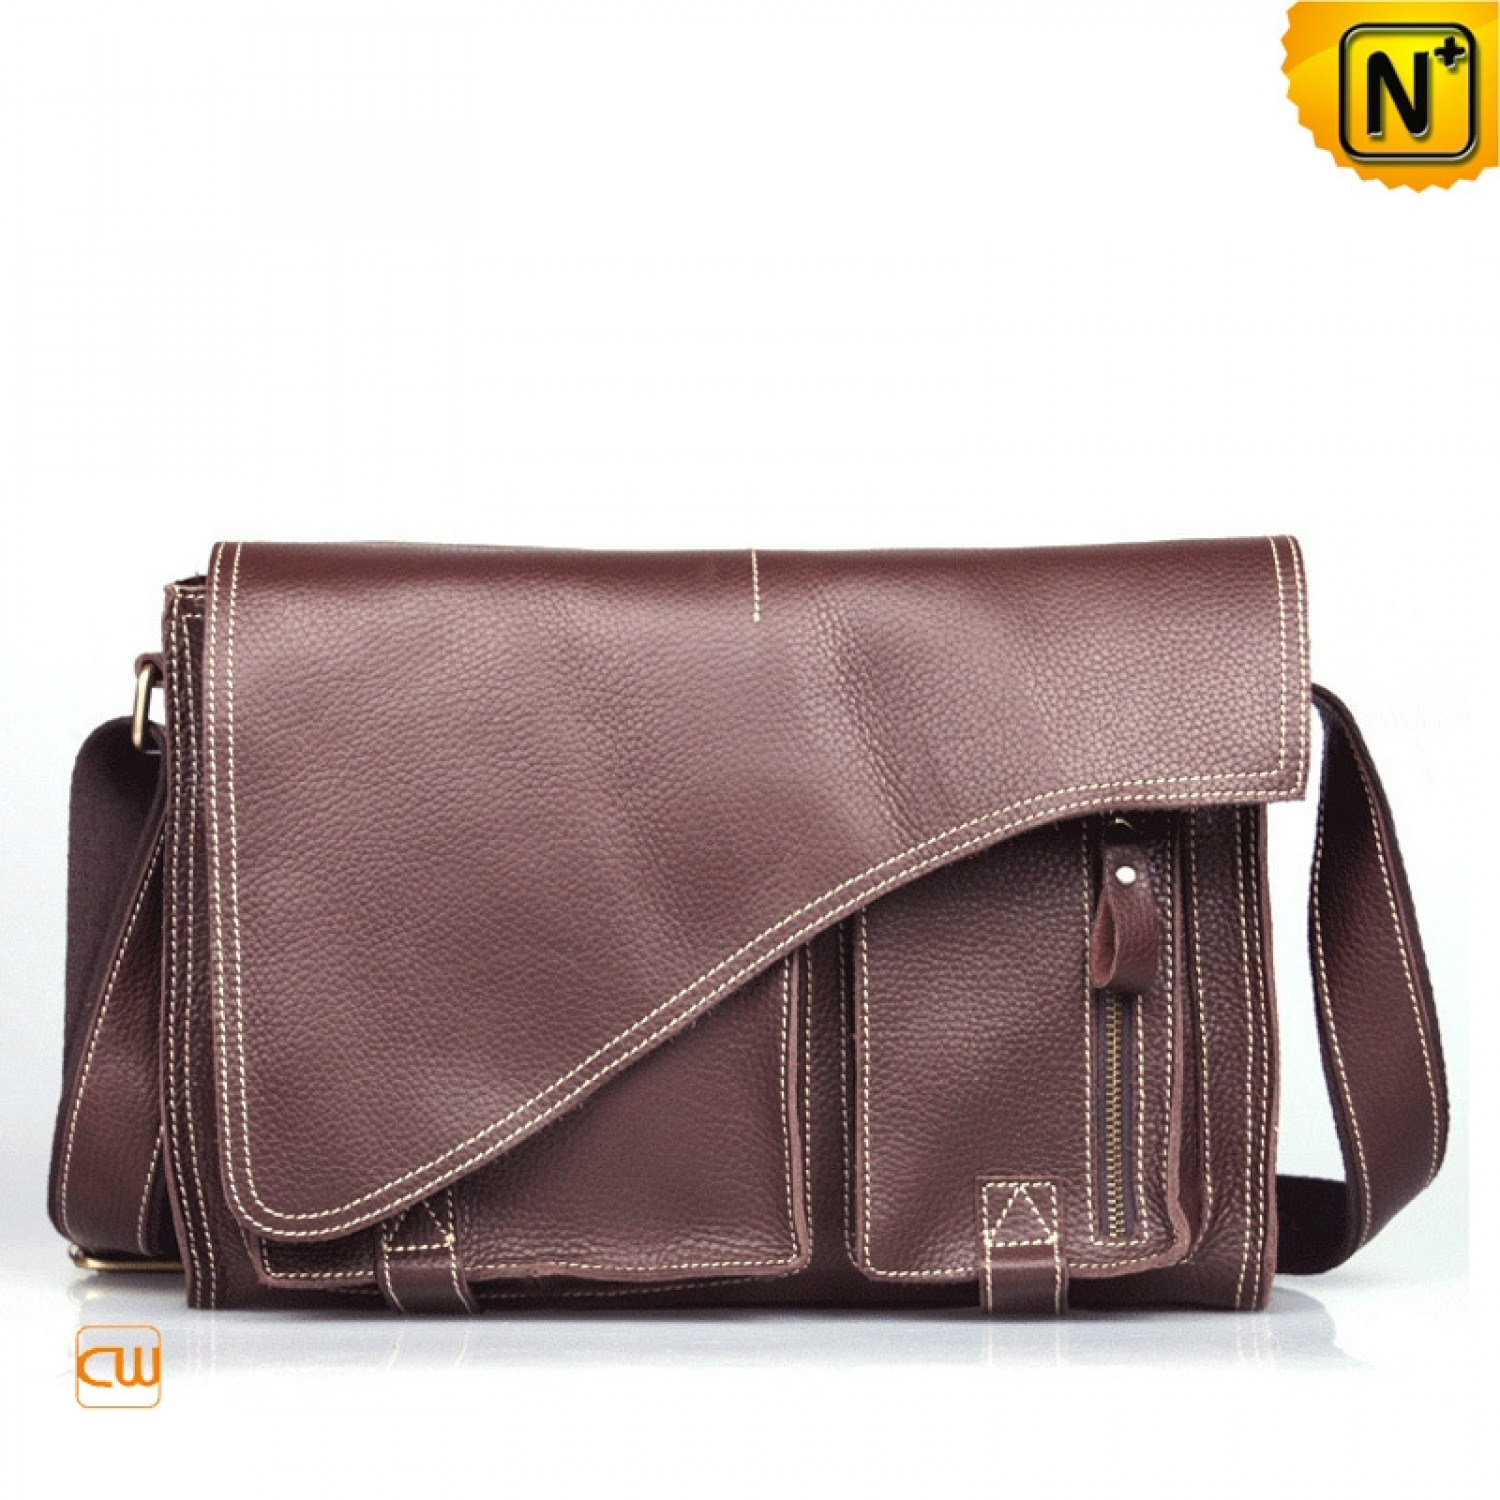 Men Designer Leather Messenger Bags CW914118 | Visual.ly